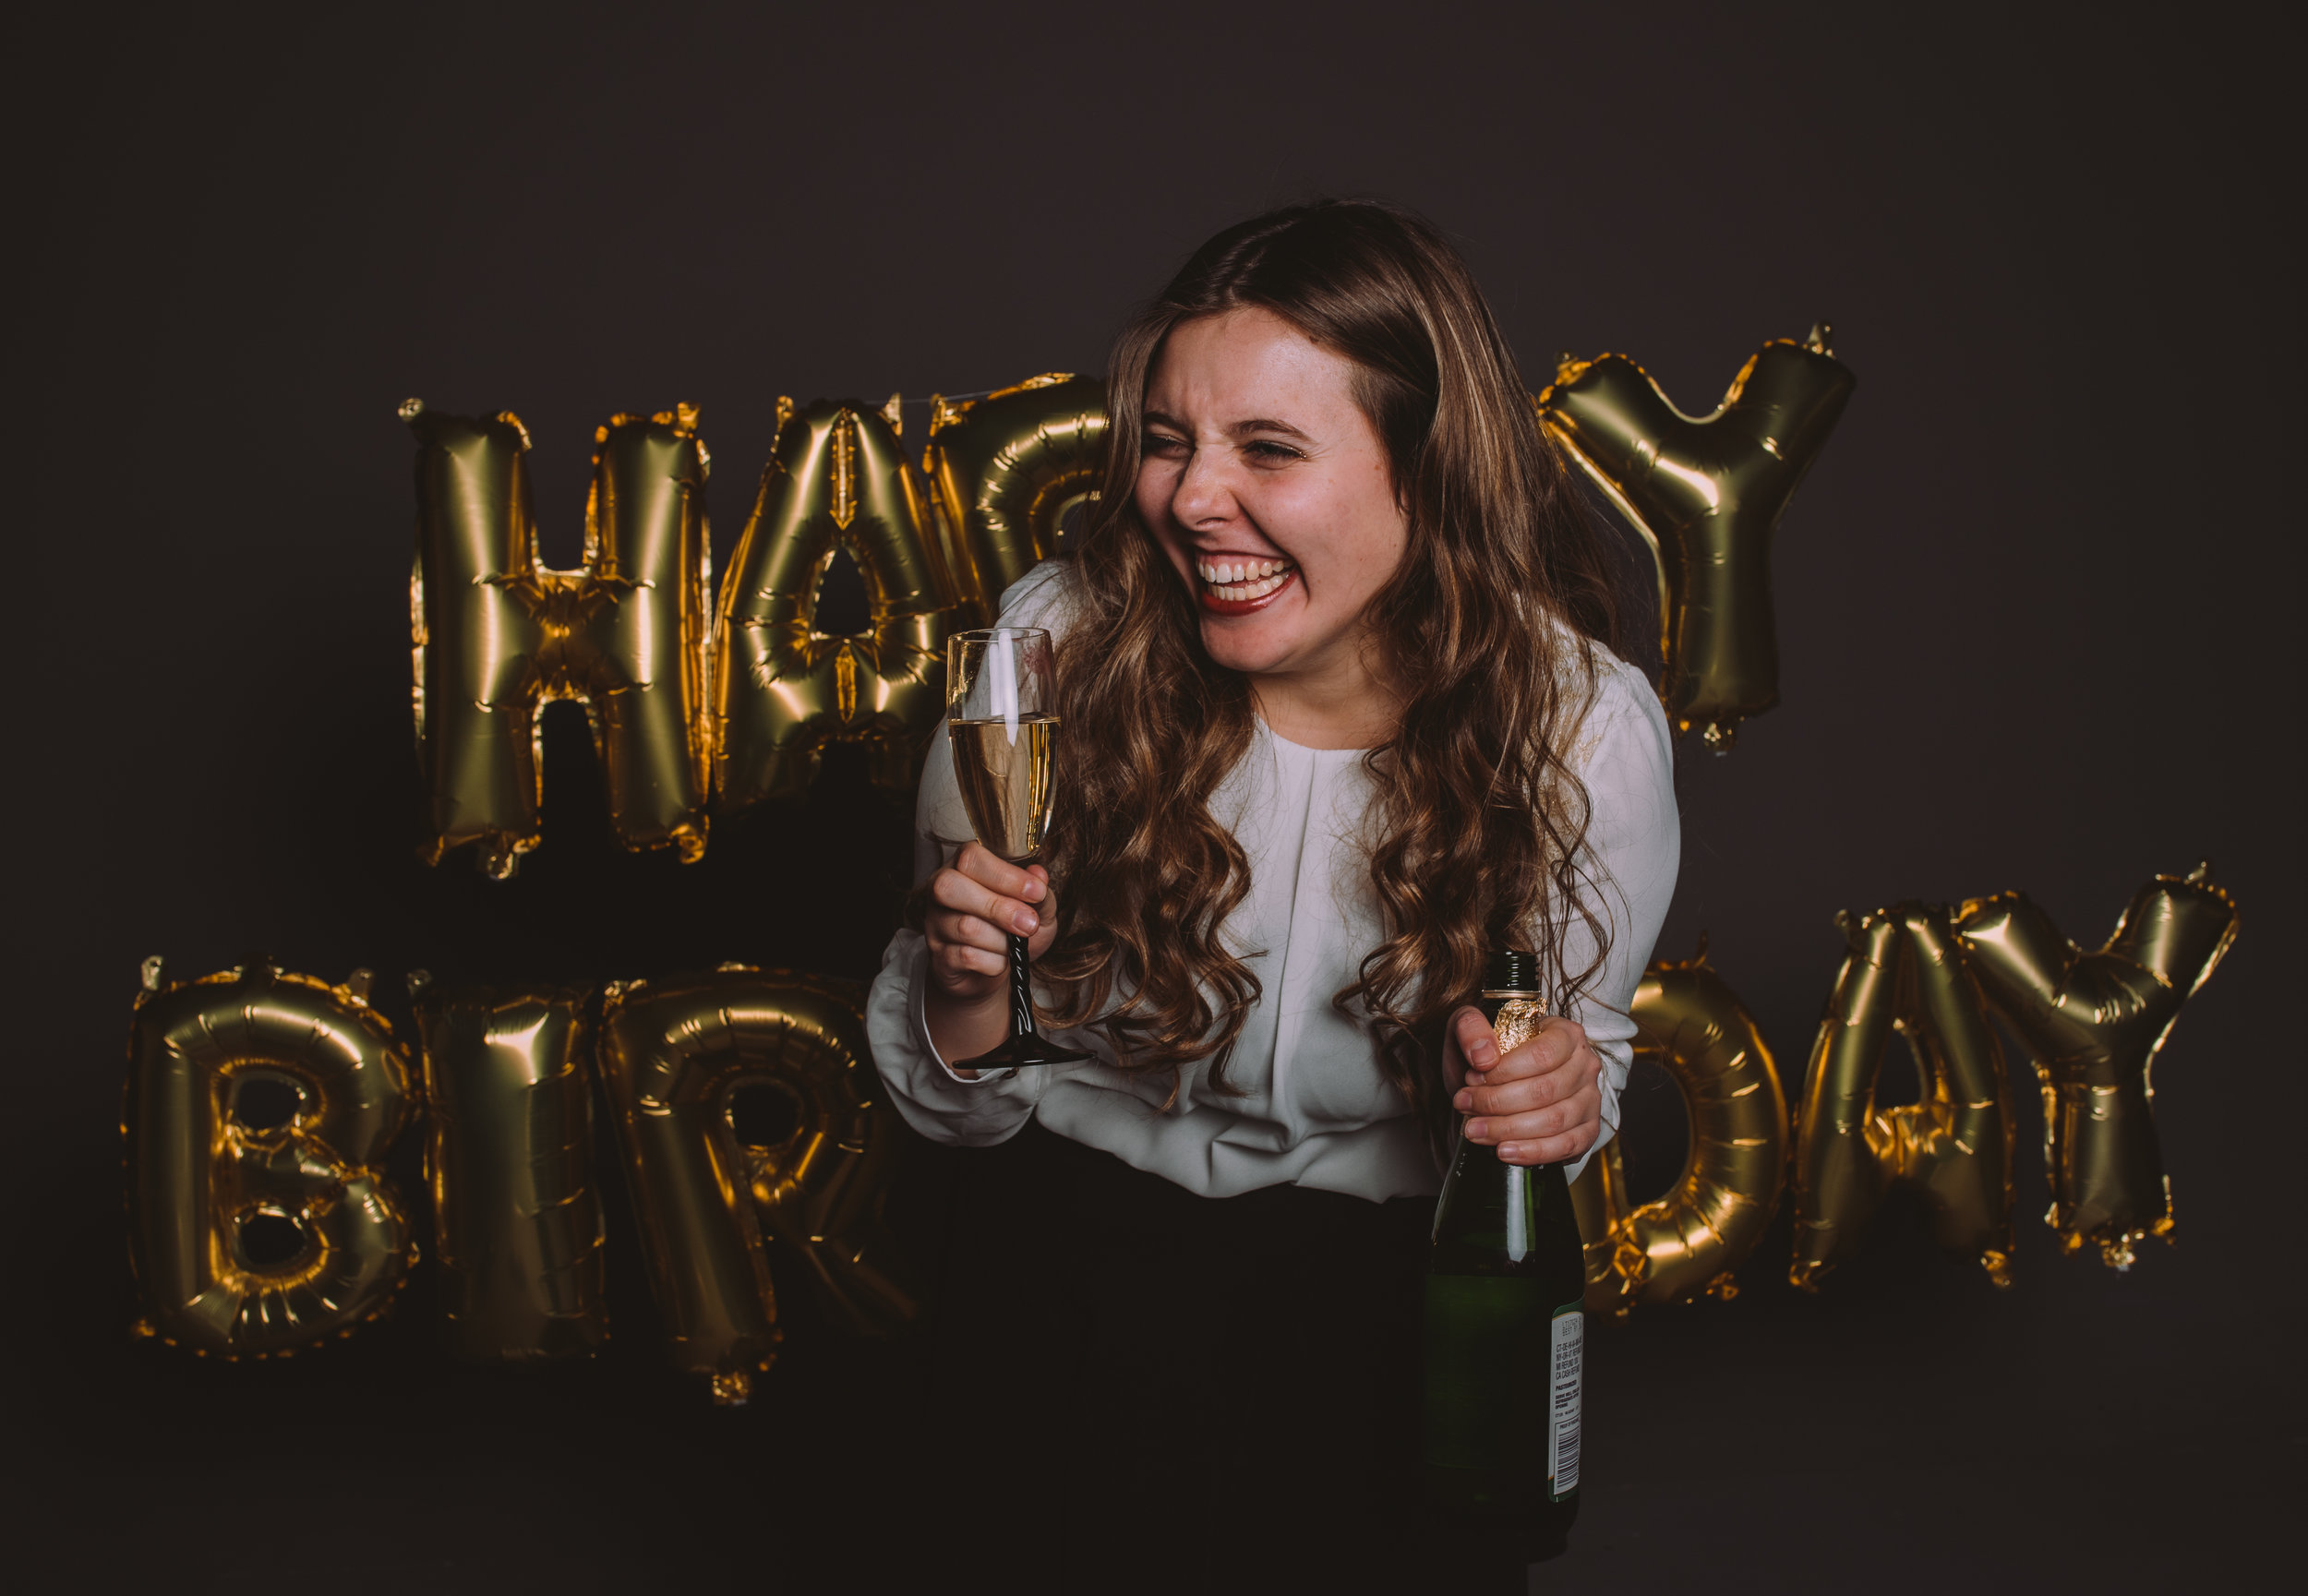 ReaganAllen_21stBirthdaySession_StudioPhotography_December2017_Portrait Photography In Tempe_ArizonaPortraitPhotographer_SamanthaRosePhotography_-1.jpg